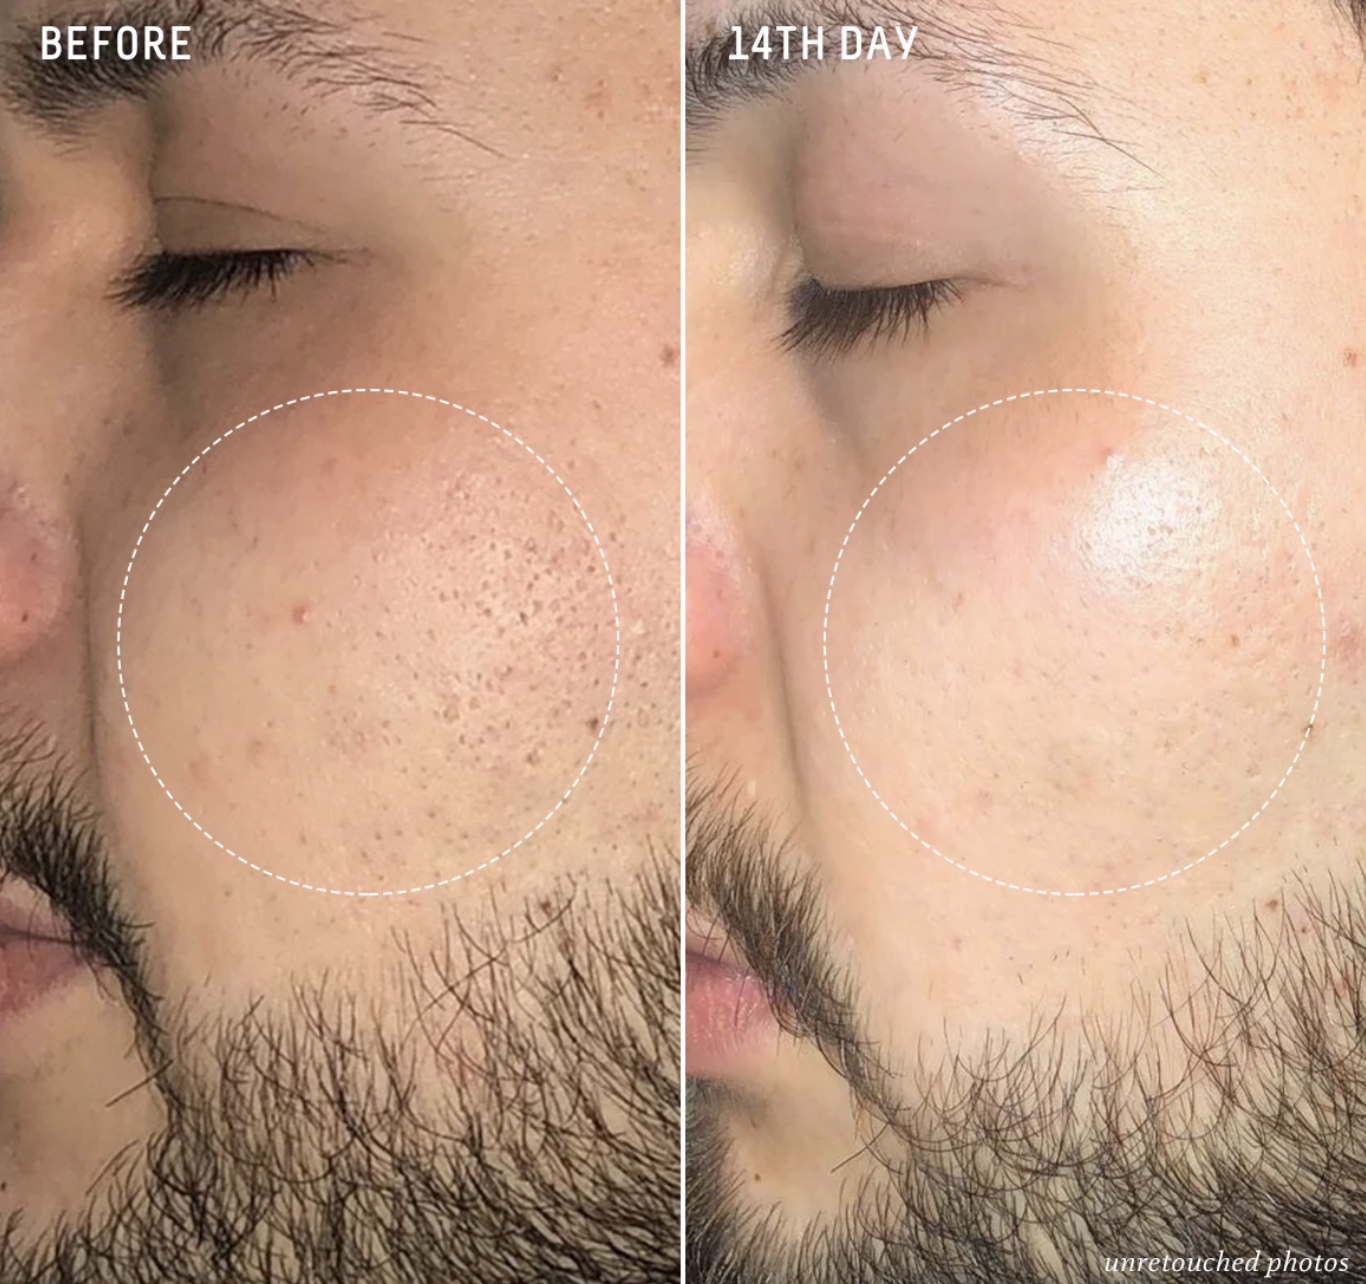 Before-and-after of a customer's visible pores and uneven skin tone compared to hardly visible pores, much smoother and brighter skin, and more even tone